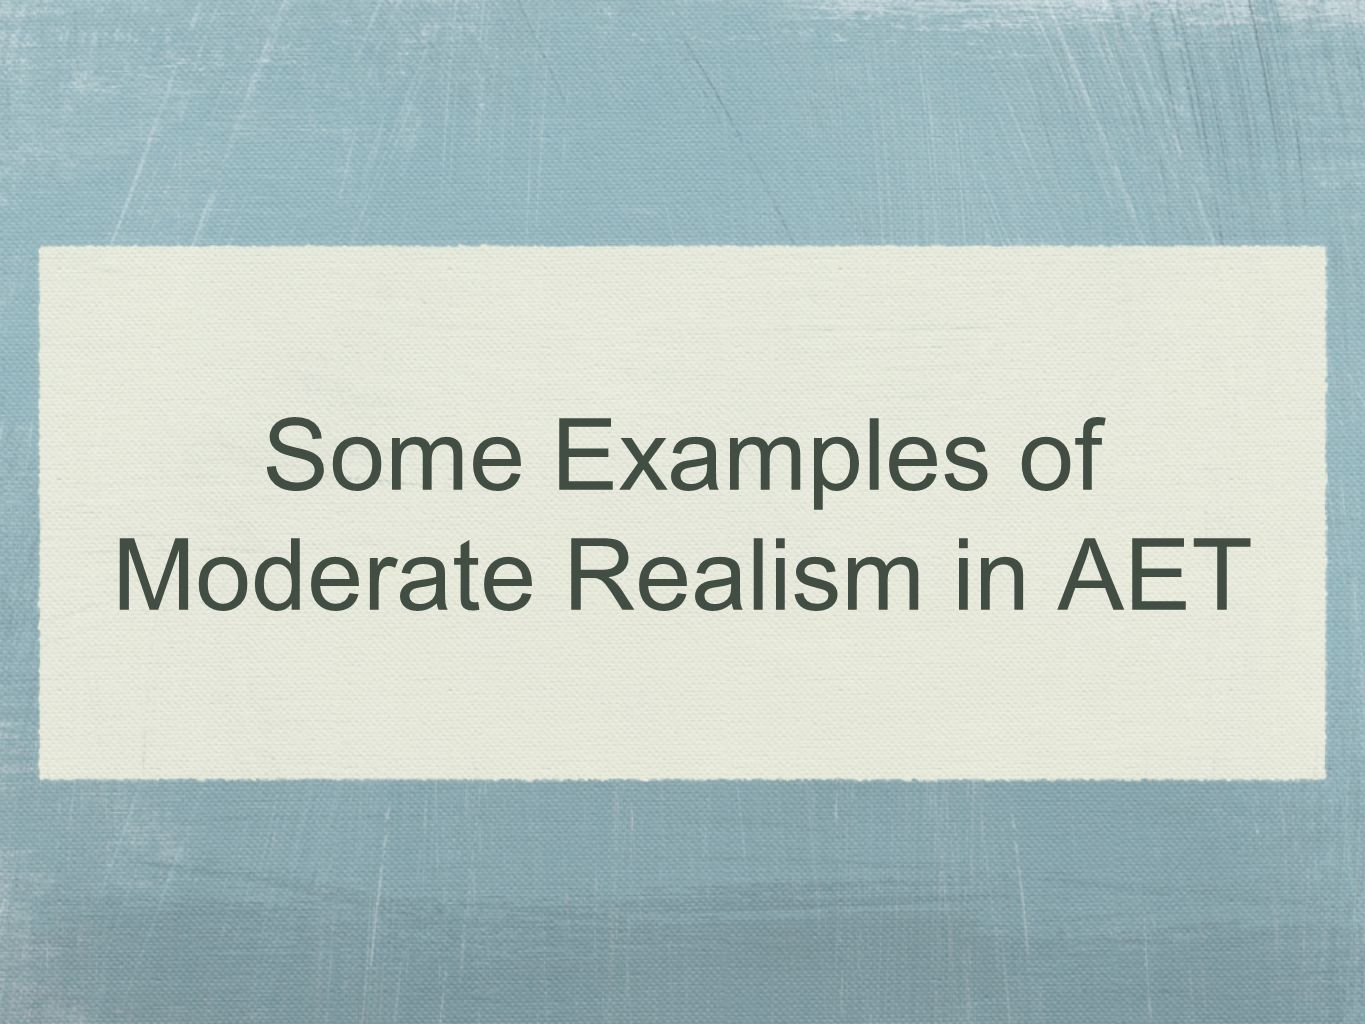 Some Examples of Moderate Realism in AET